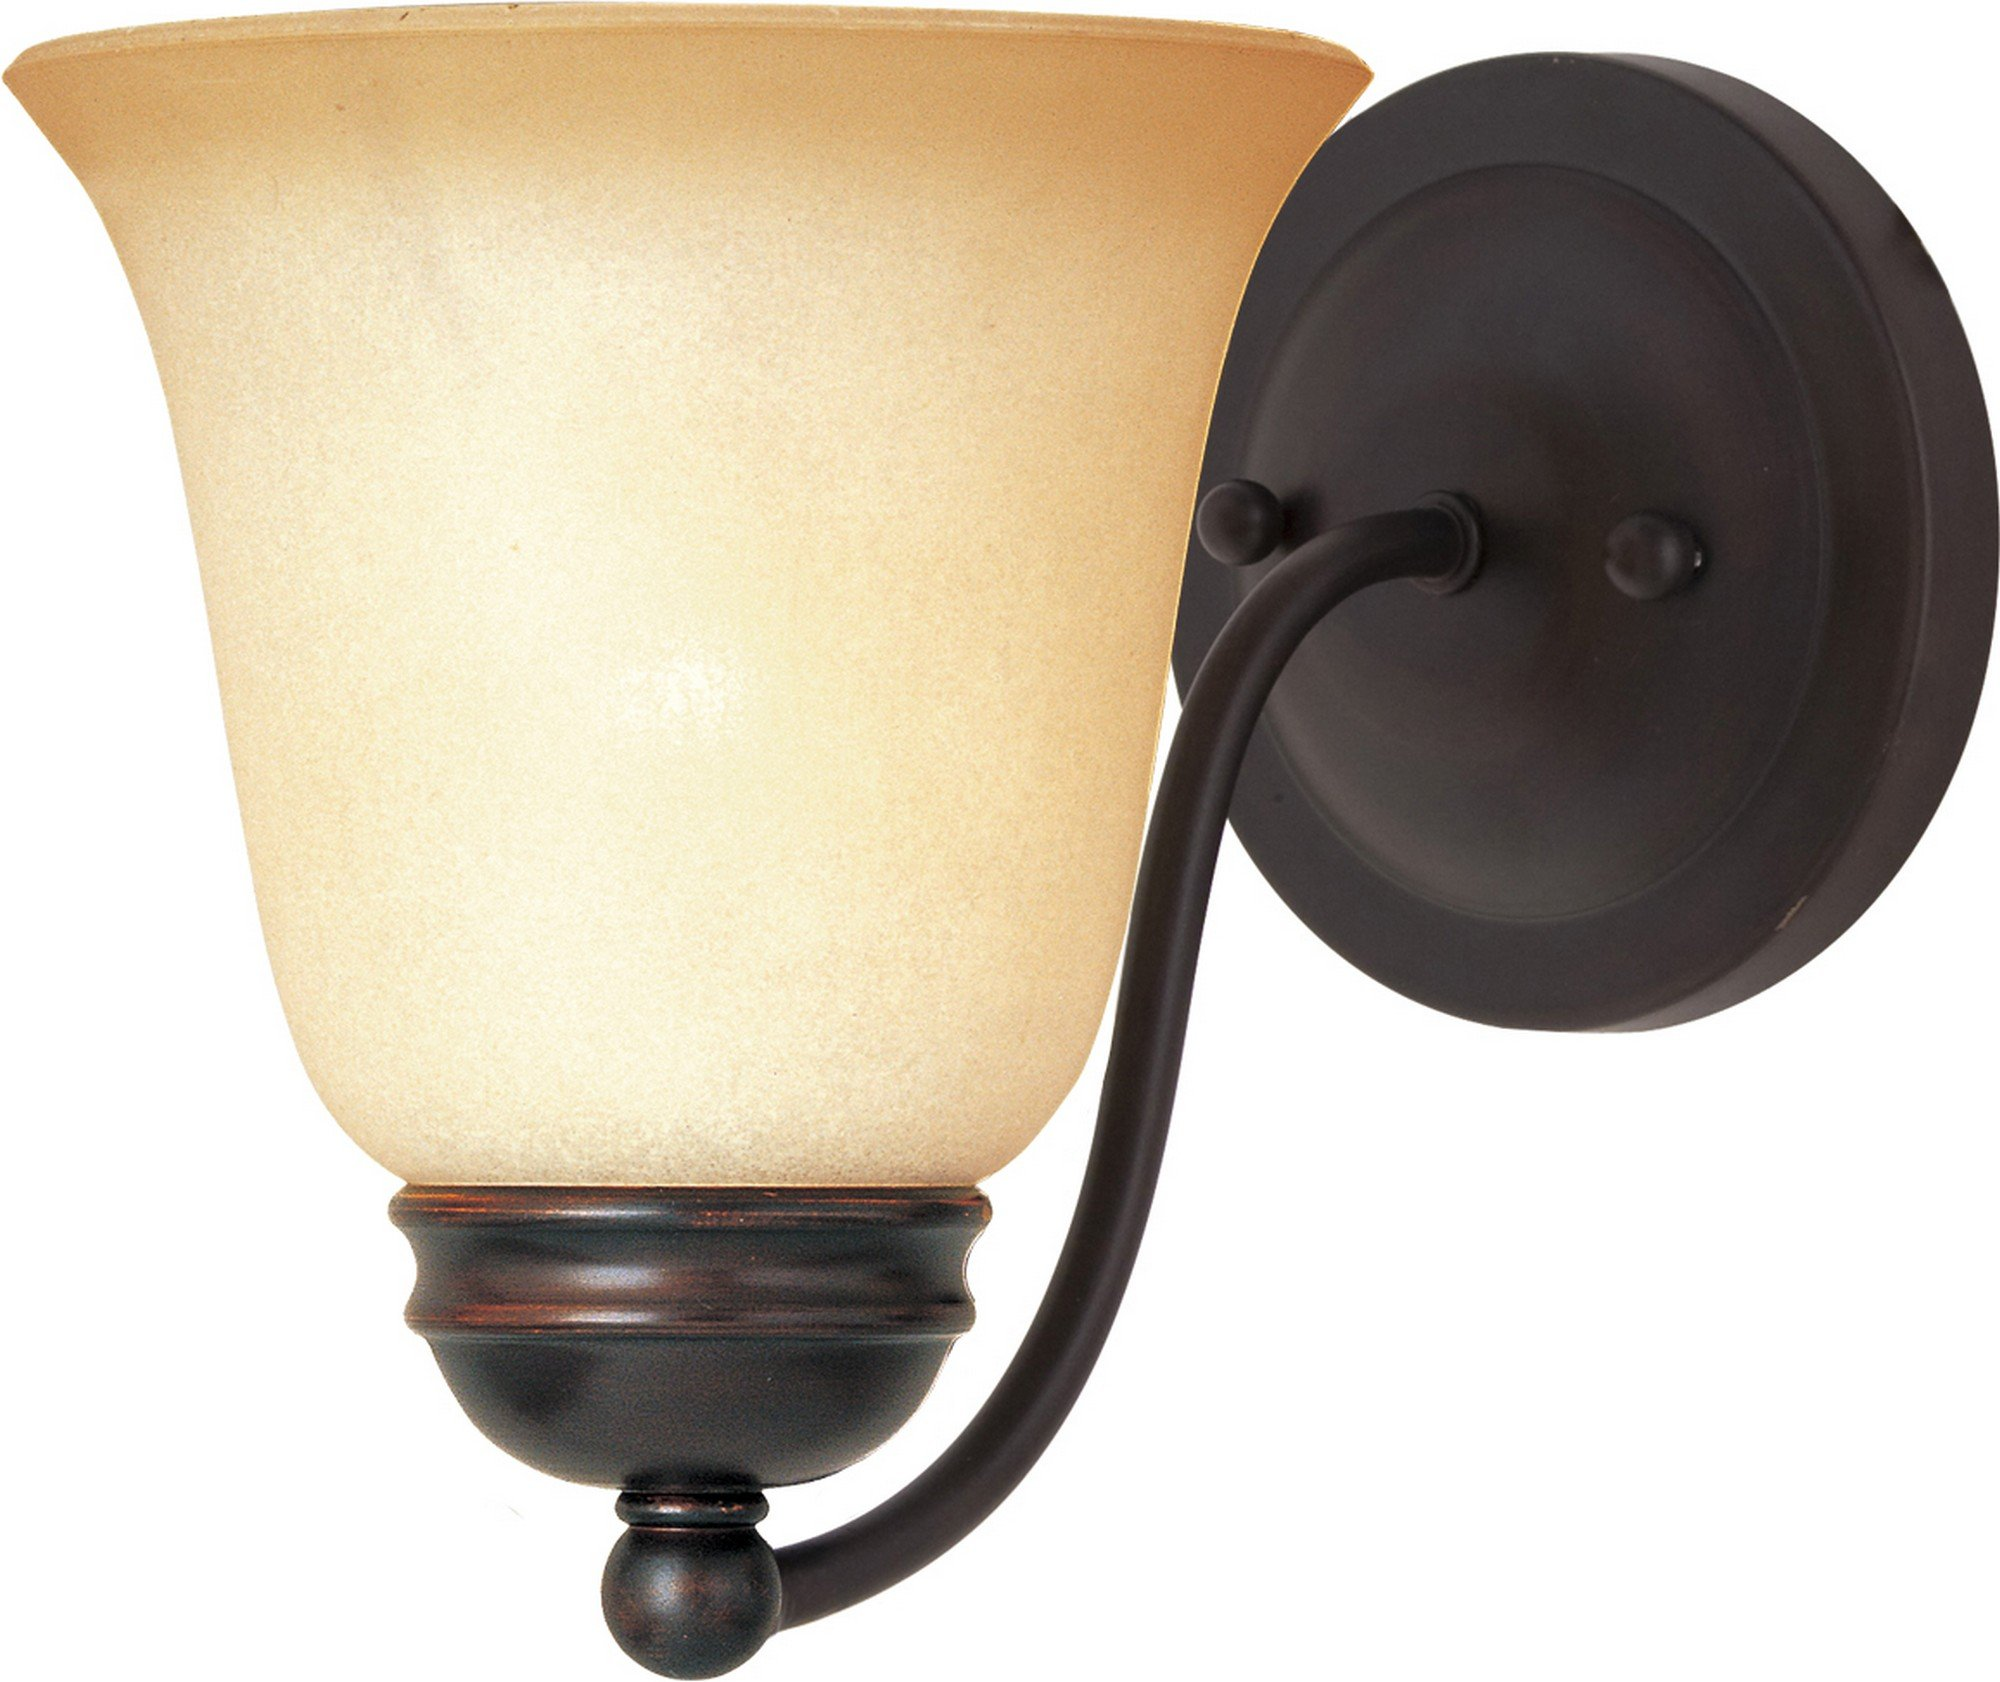 Maxim 2120WSOI Basix 1-Light Wall Sconce Bath Vanity, Oil Rubbed Bronze Finish, Wilshire Glass, MB Incandescent Incandescent Bulb , 100W Max., Damp Safety Rating, Standard Dimmable, Glass Shade Material, 4600 Rated Lumens